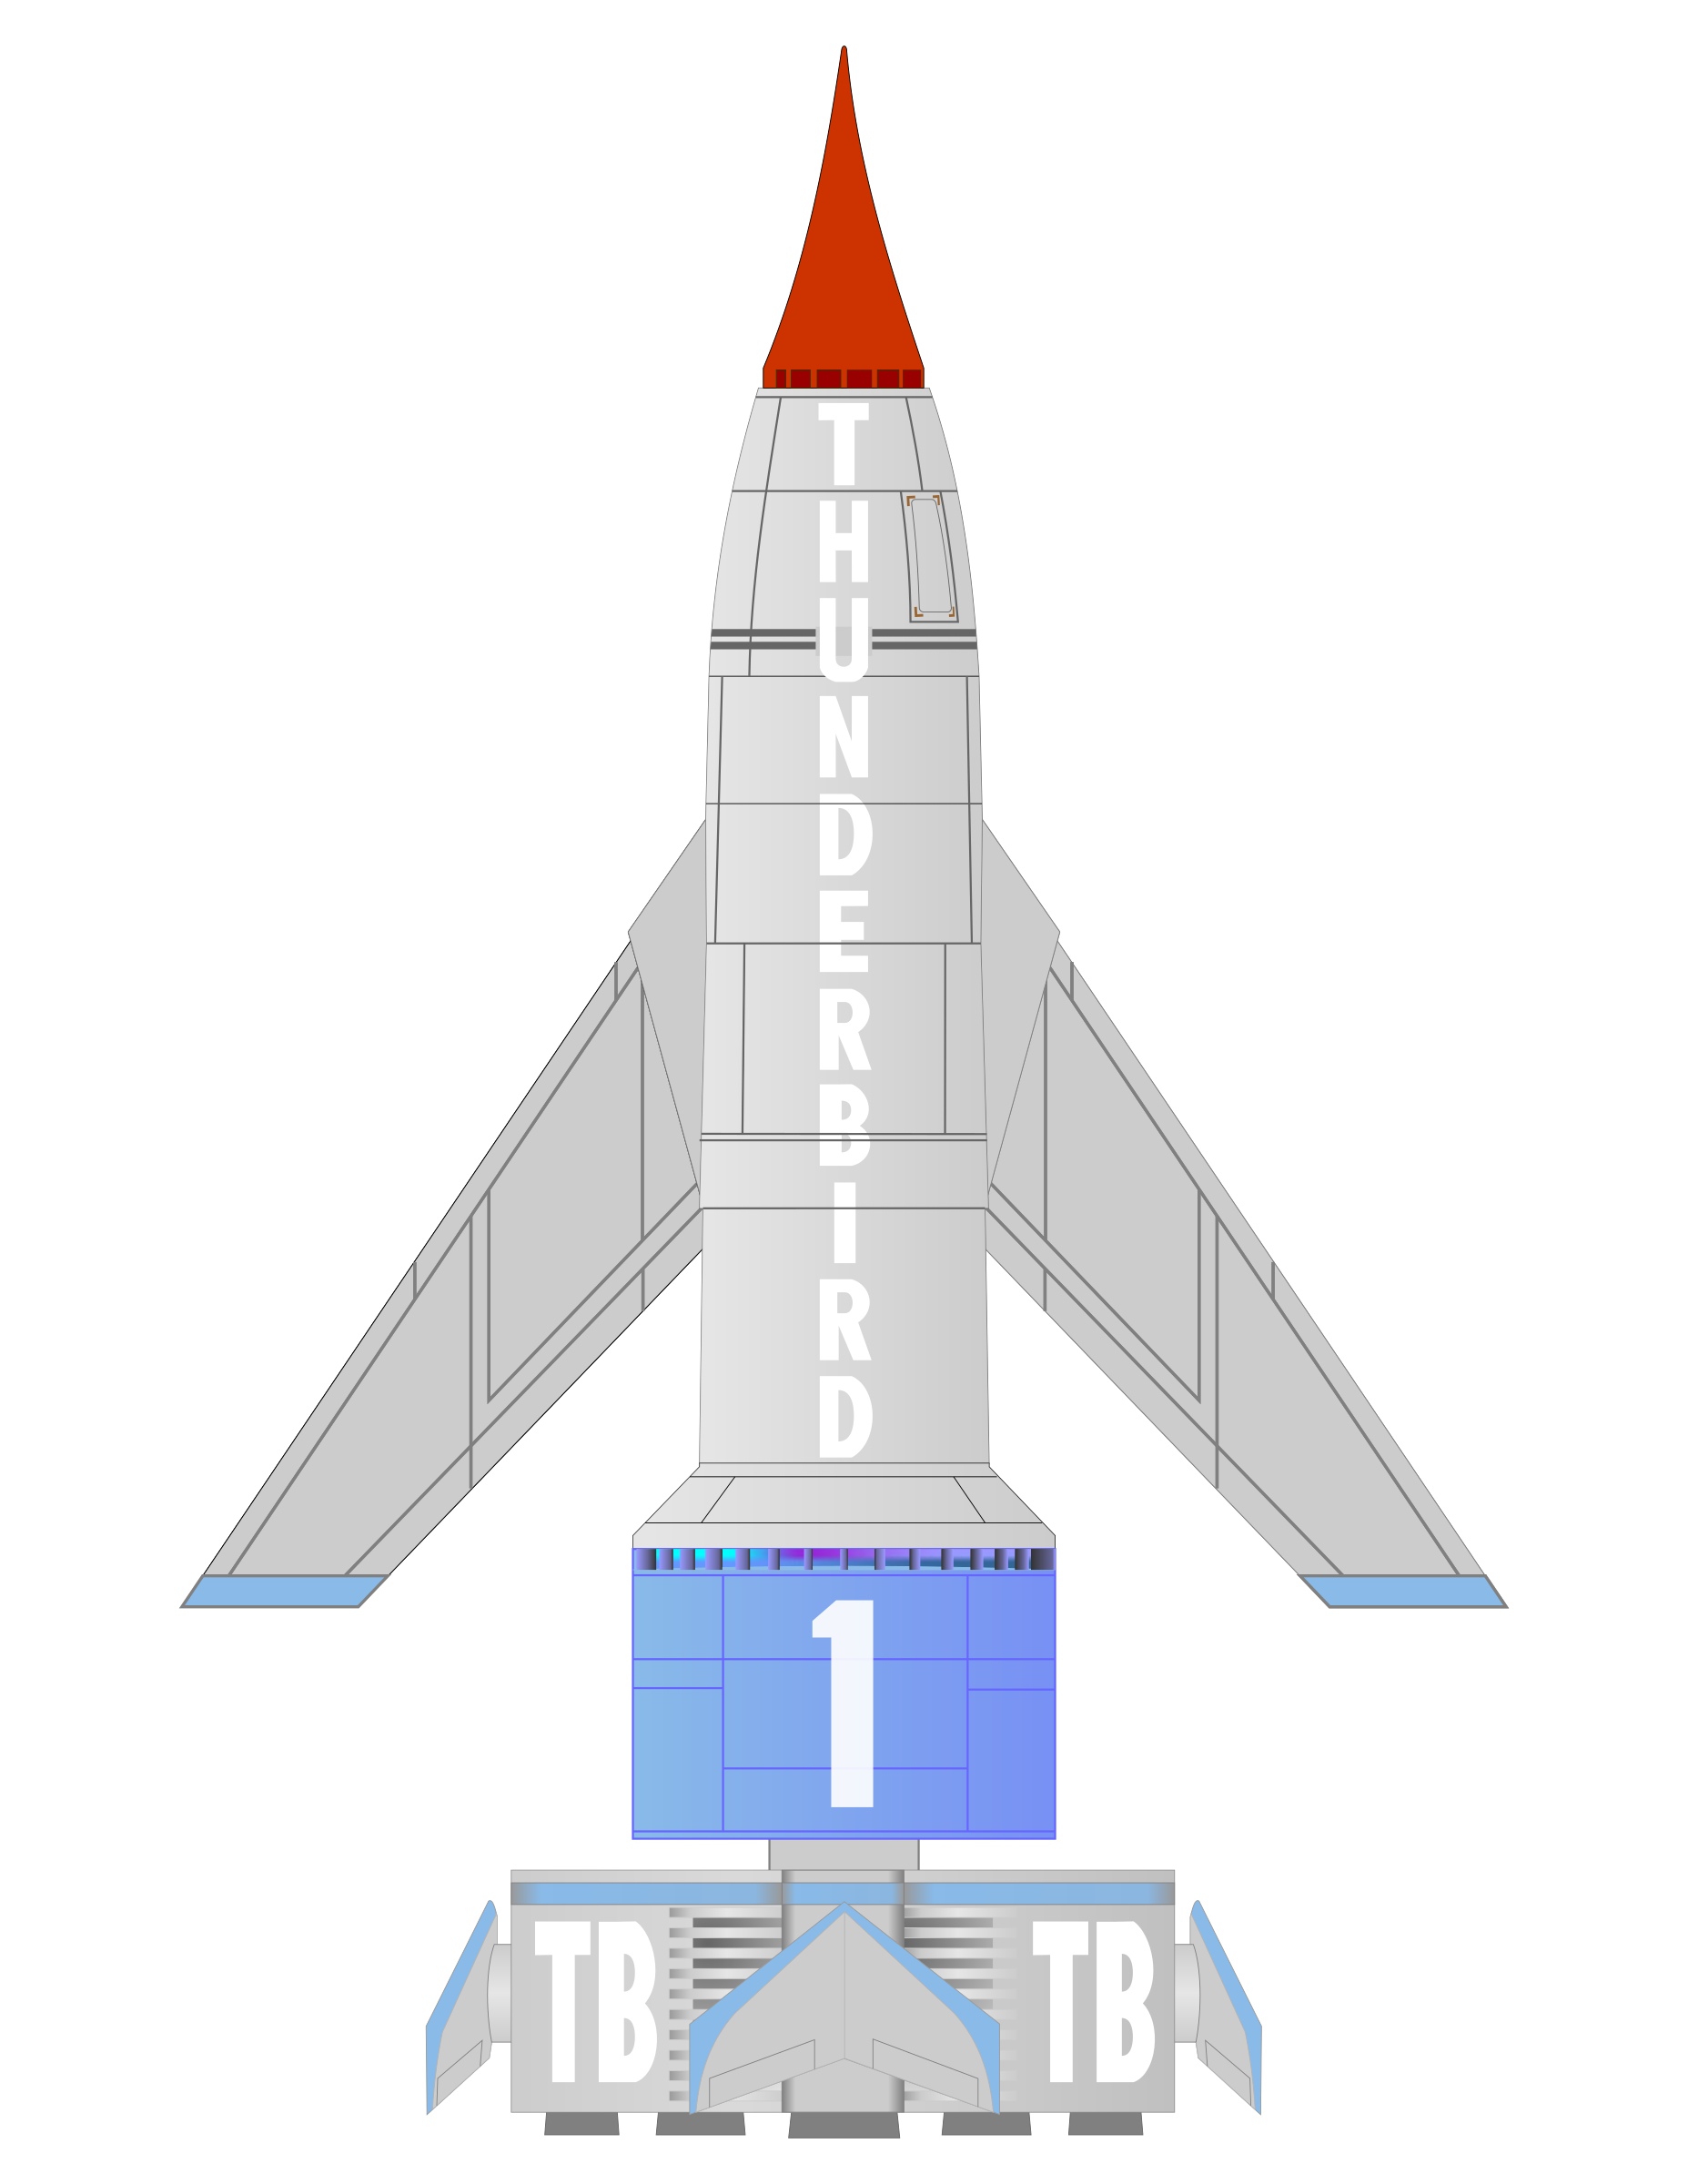 Thunderbird big image png. Spaceship clipart aerospace engineering